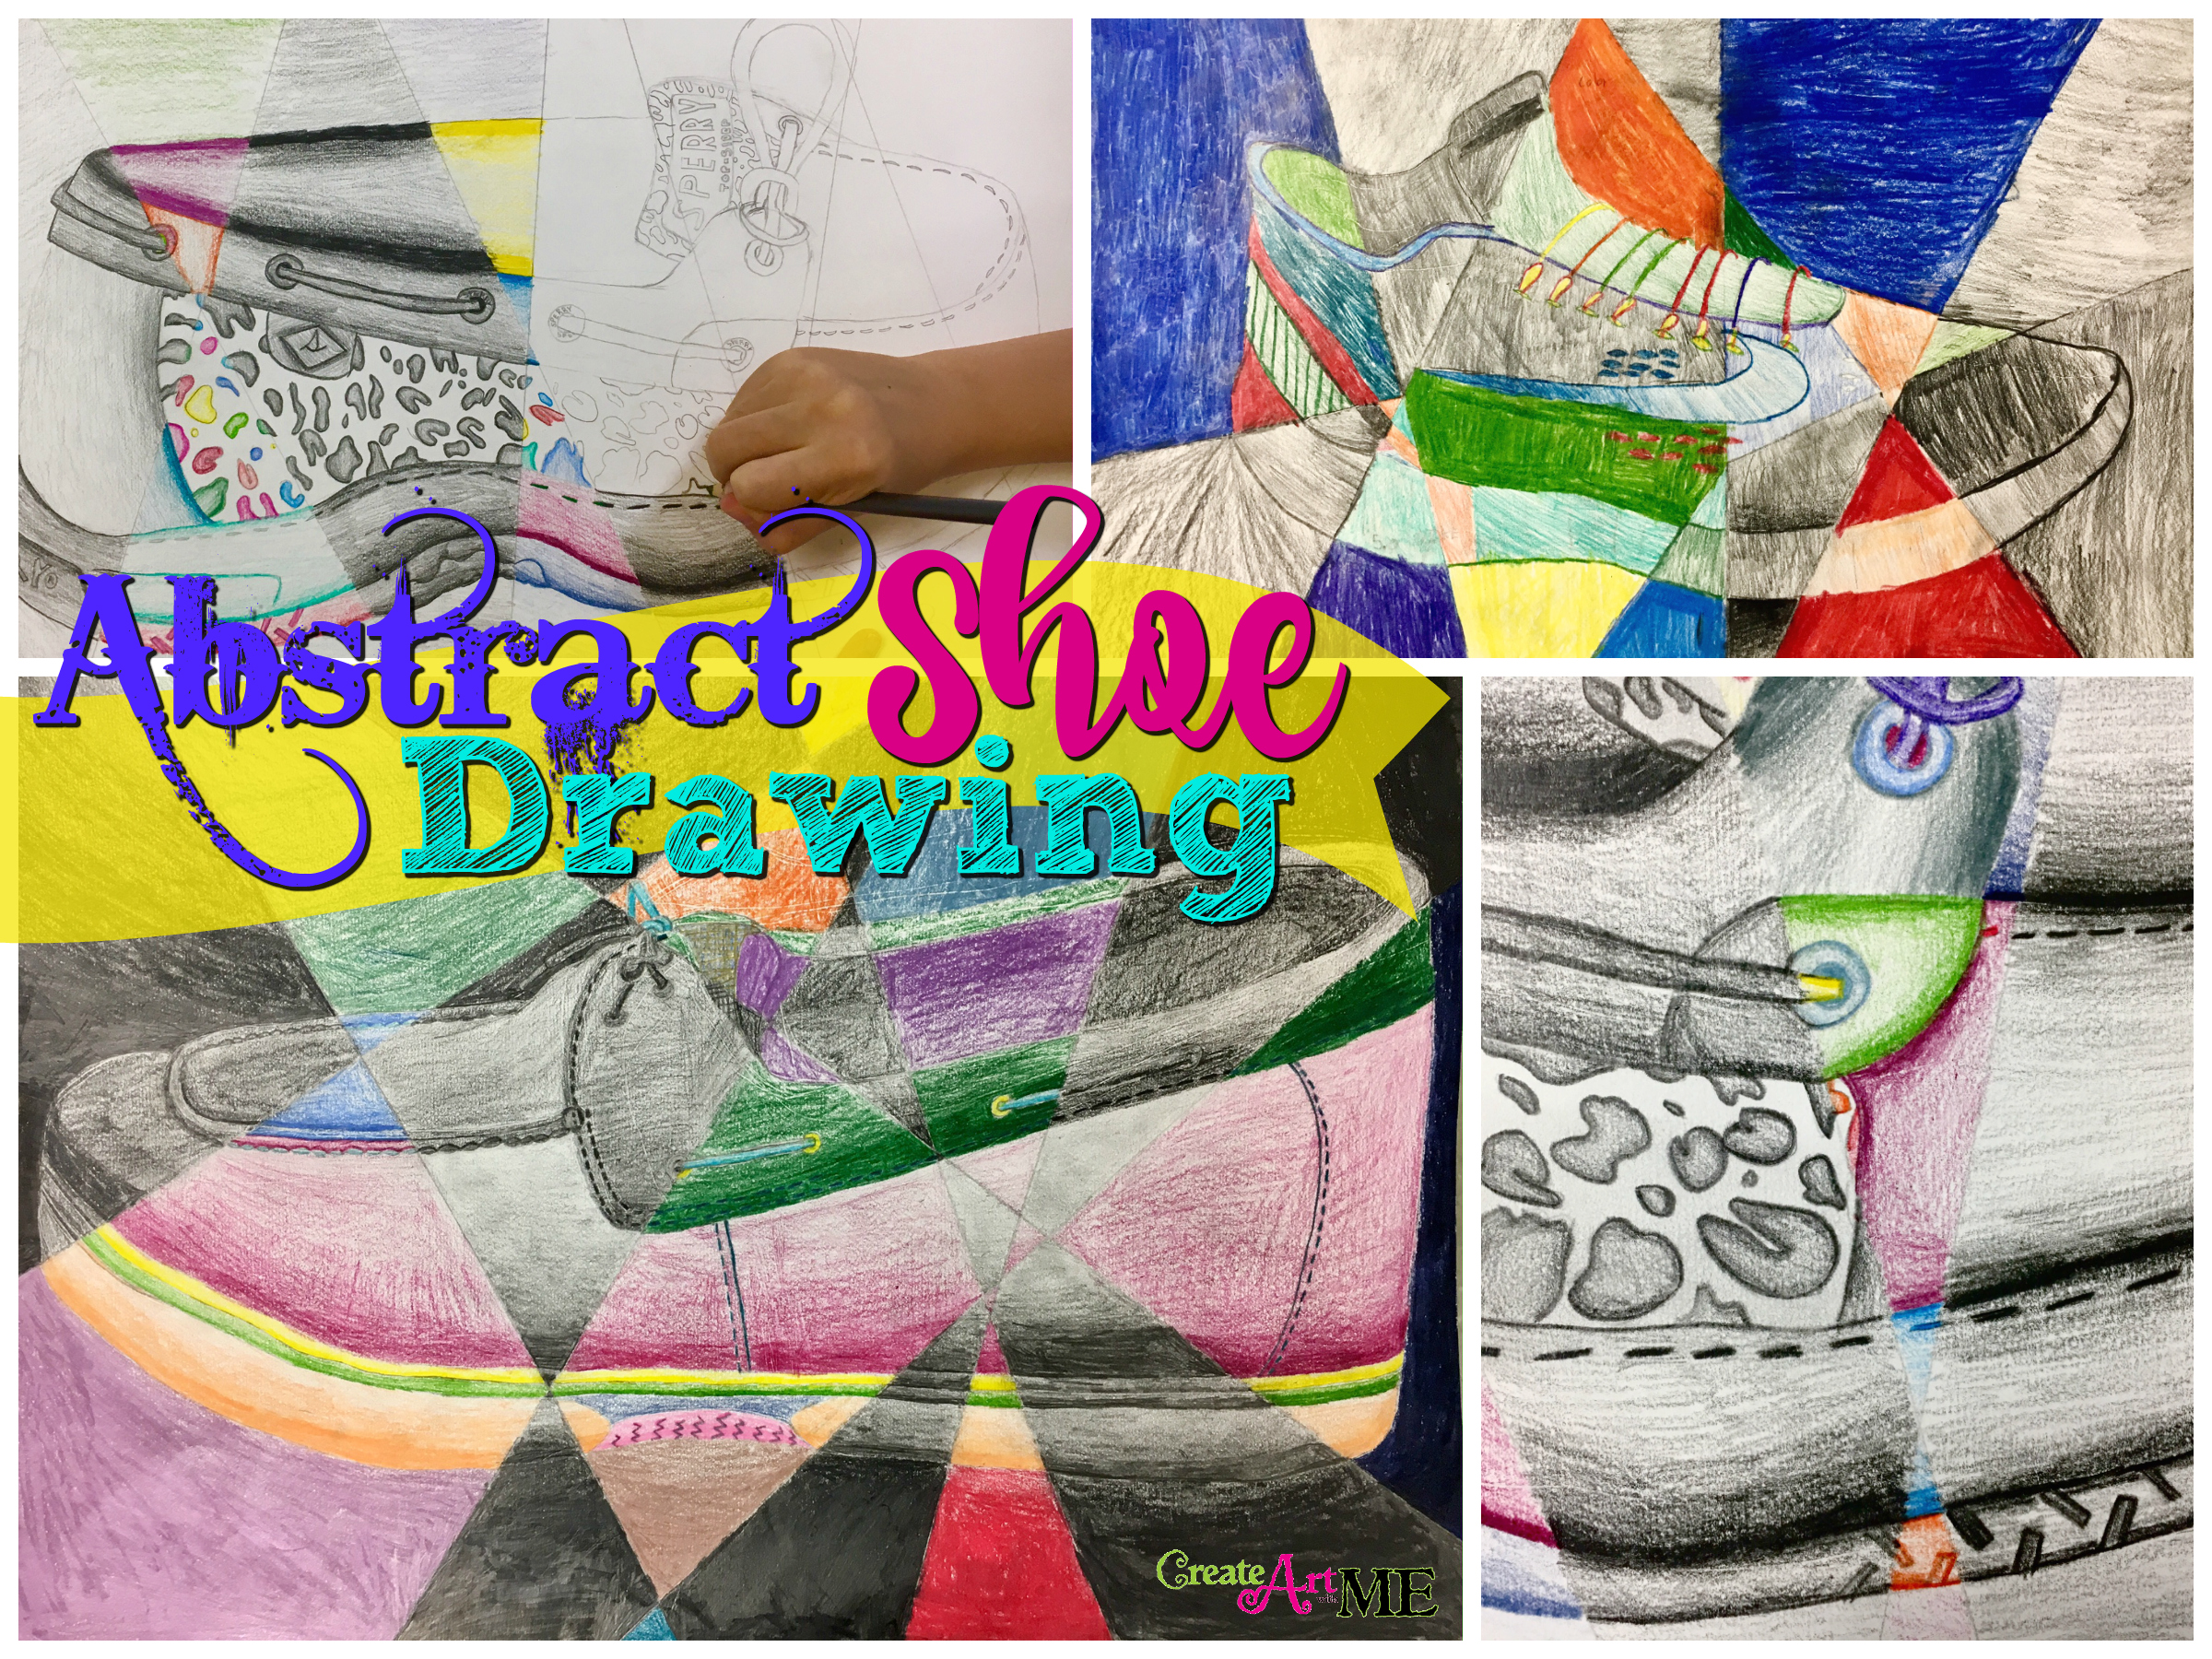 medium resolution of Abstract Shoe Value Drawing - Create Art with ME